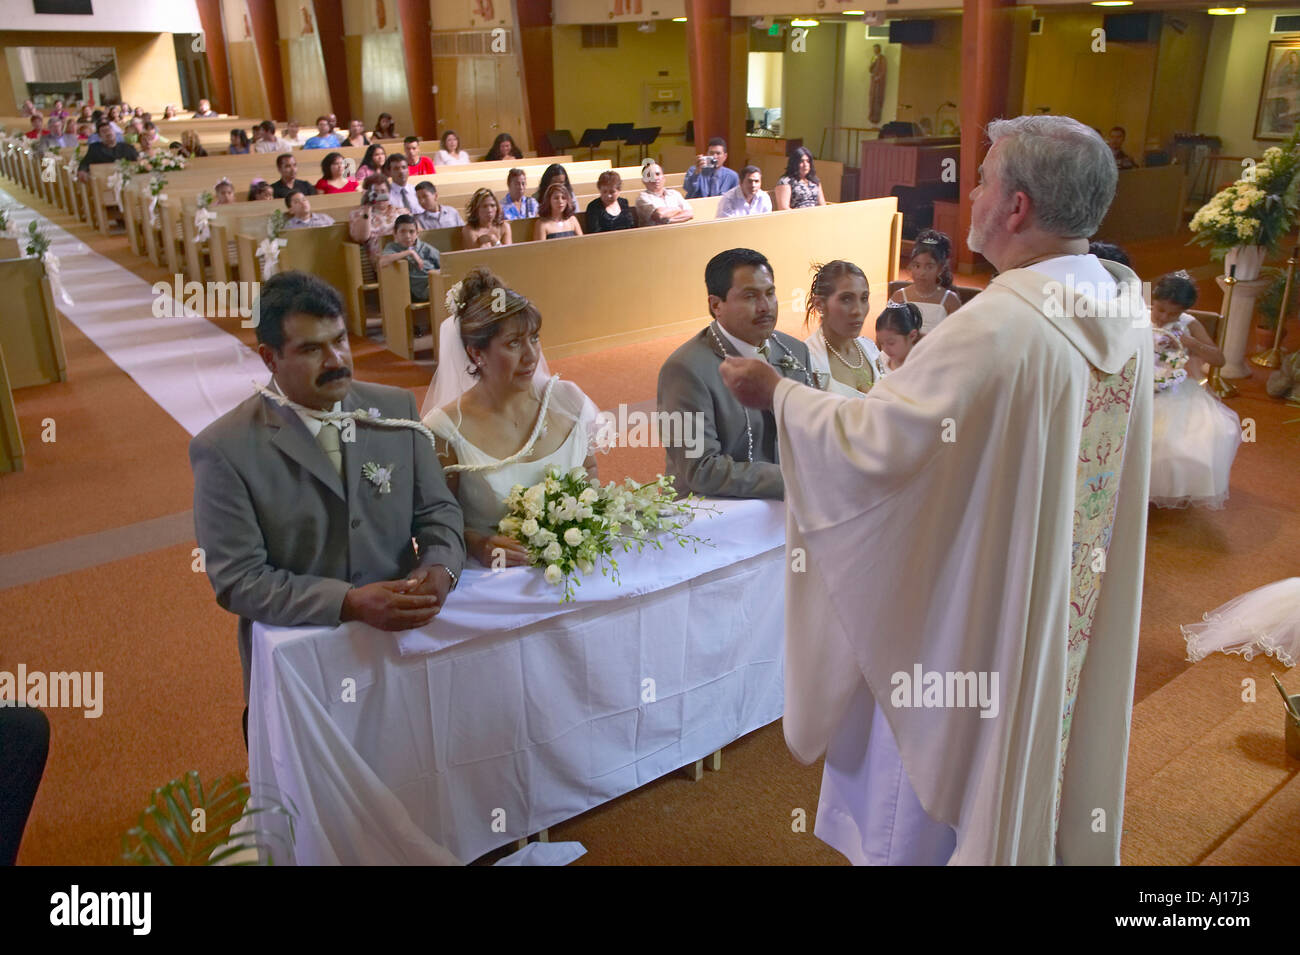 Catholic Priest Administers Wedding Vows To Two Latino American Couples At St Thomas Church In Ojai California